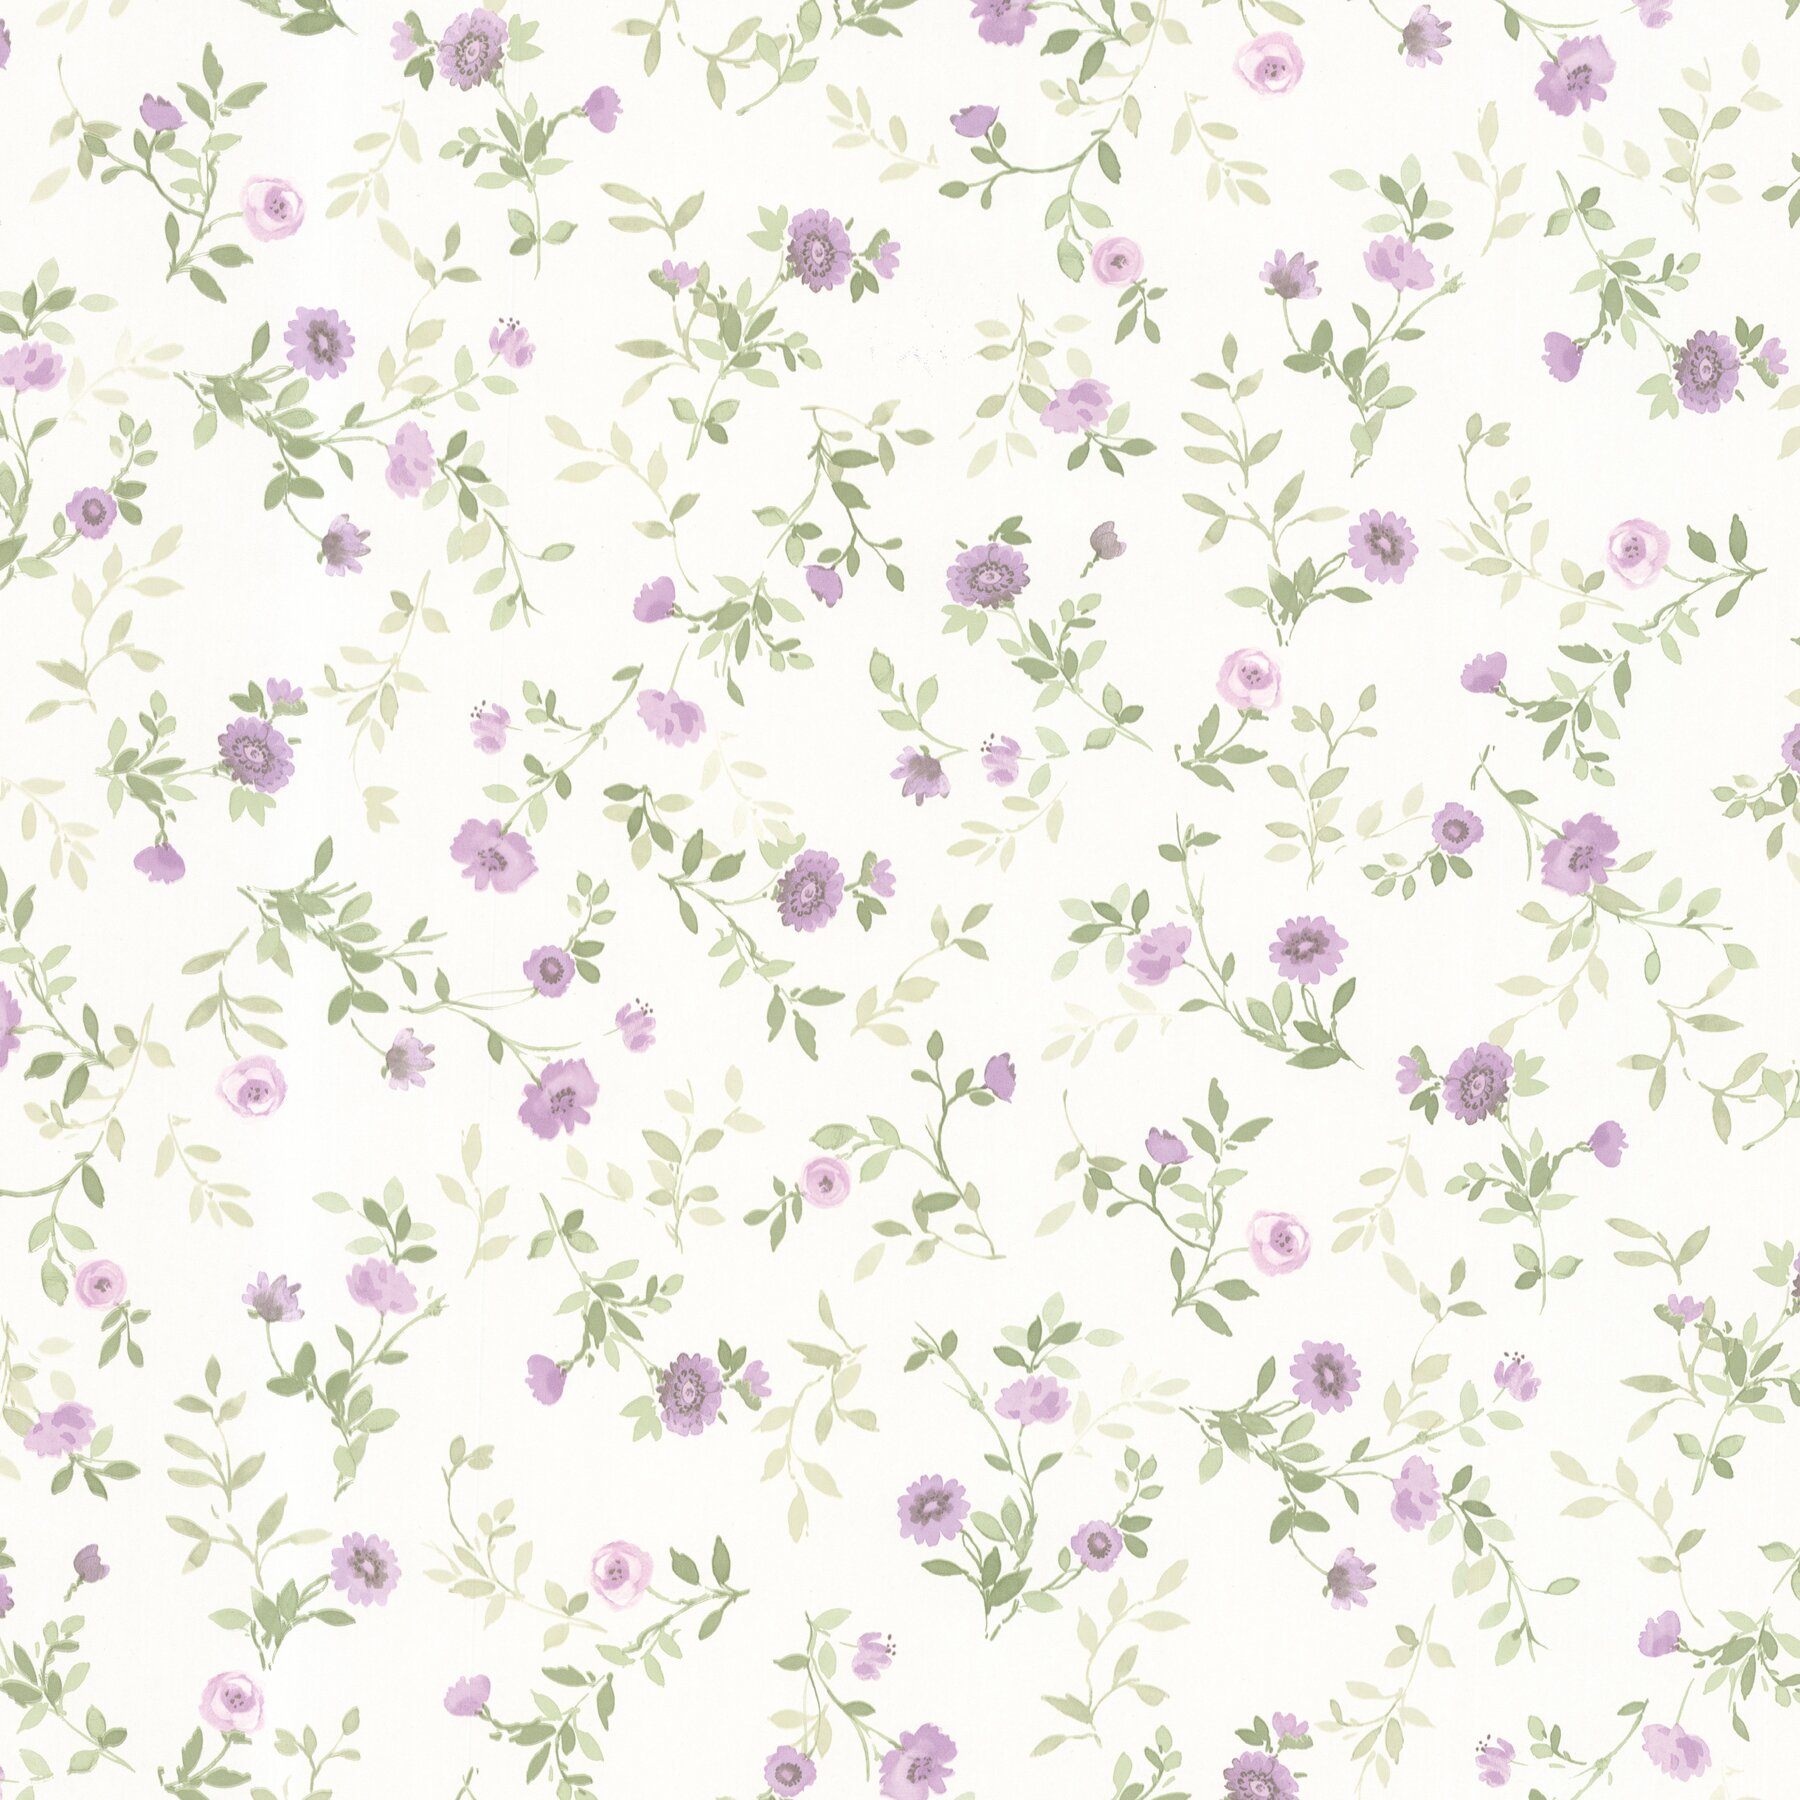 Brewster home fashions dollhouse sophie 33 39 x 20 5 floral for 3d embossed wallpaper